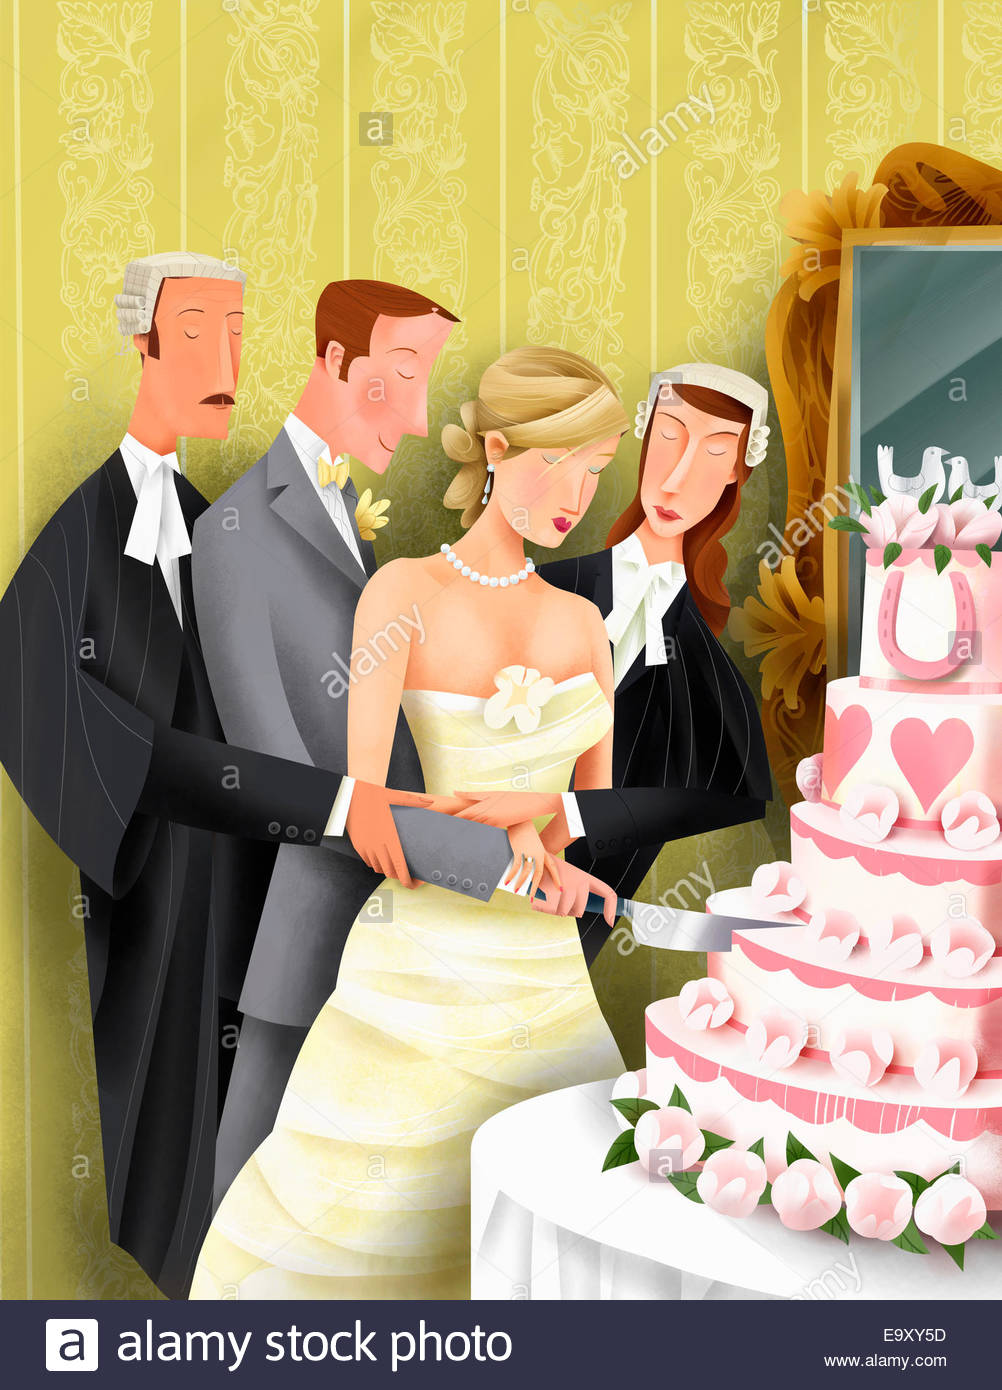 Attorneys helping bride and groom cut into wedding cake - Stock Image